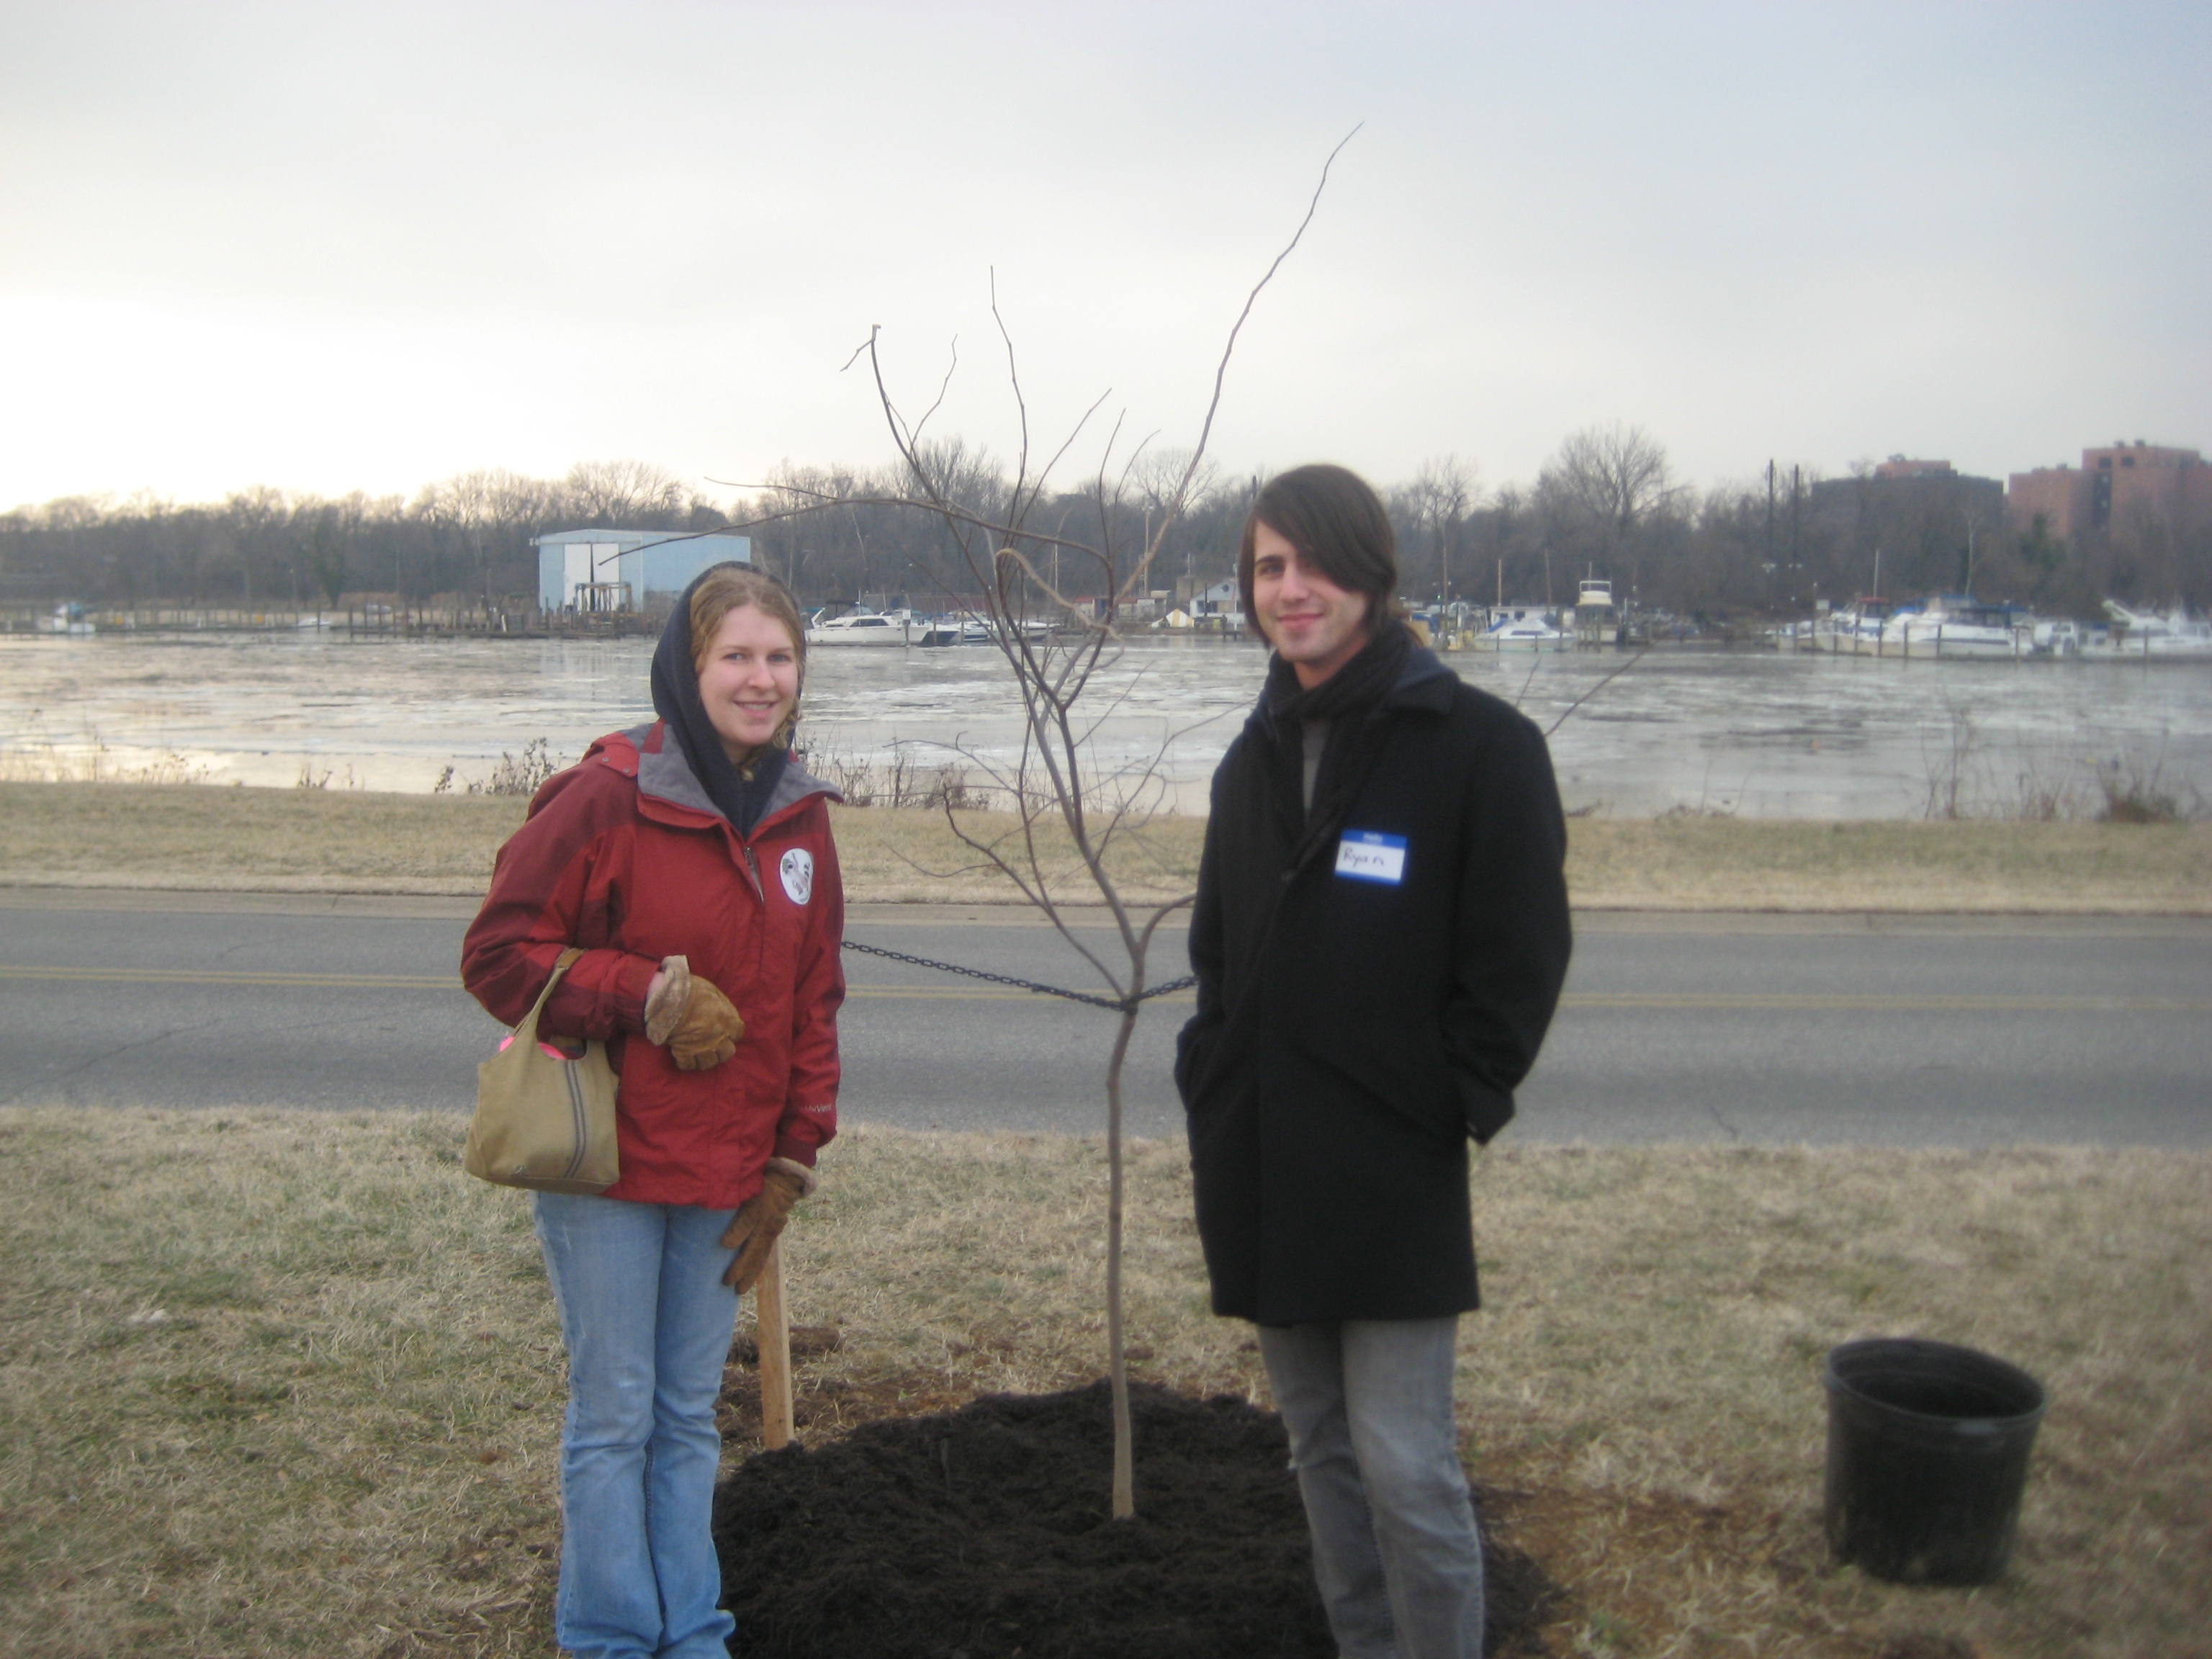 Sara Murrill (left), a College of Natural Resources forestry graduate student at Virginia Tech and Virginia Tech aerospace alumnus Ryan Wagoner of Fairfax, Va., helped a thousand kids plant 44 trees at Anacostia National Park in Washington D.C., in honor of President Barack Obama.